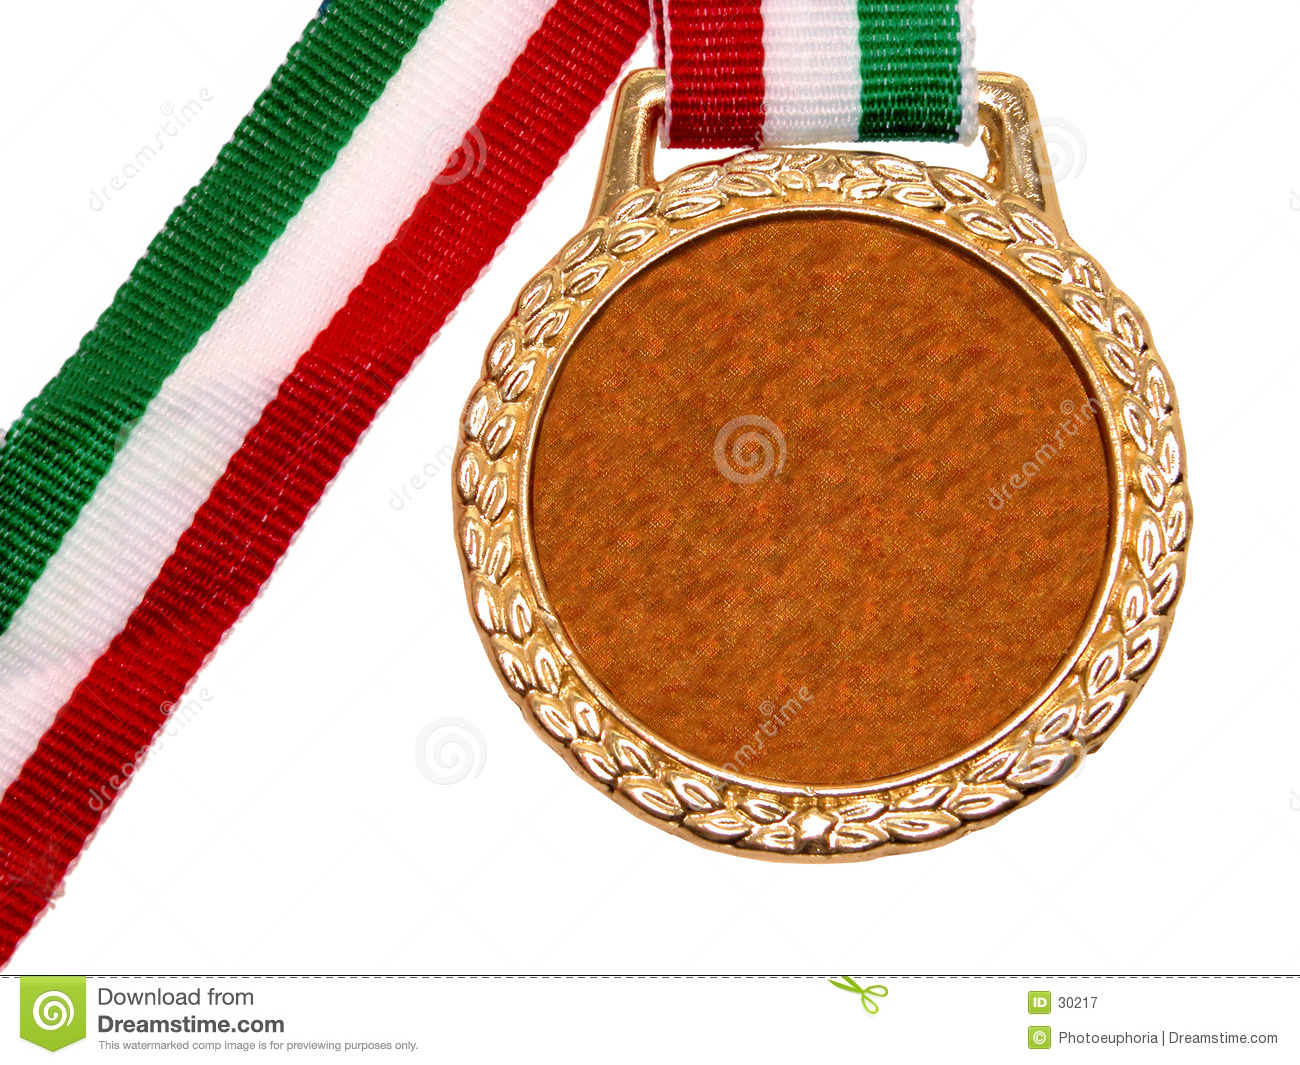 Misc.: Shiny Gold Medal with Red White & Green Ribbon